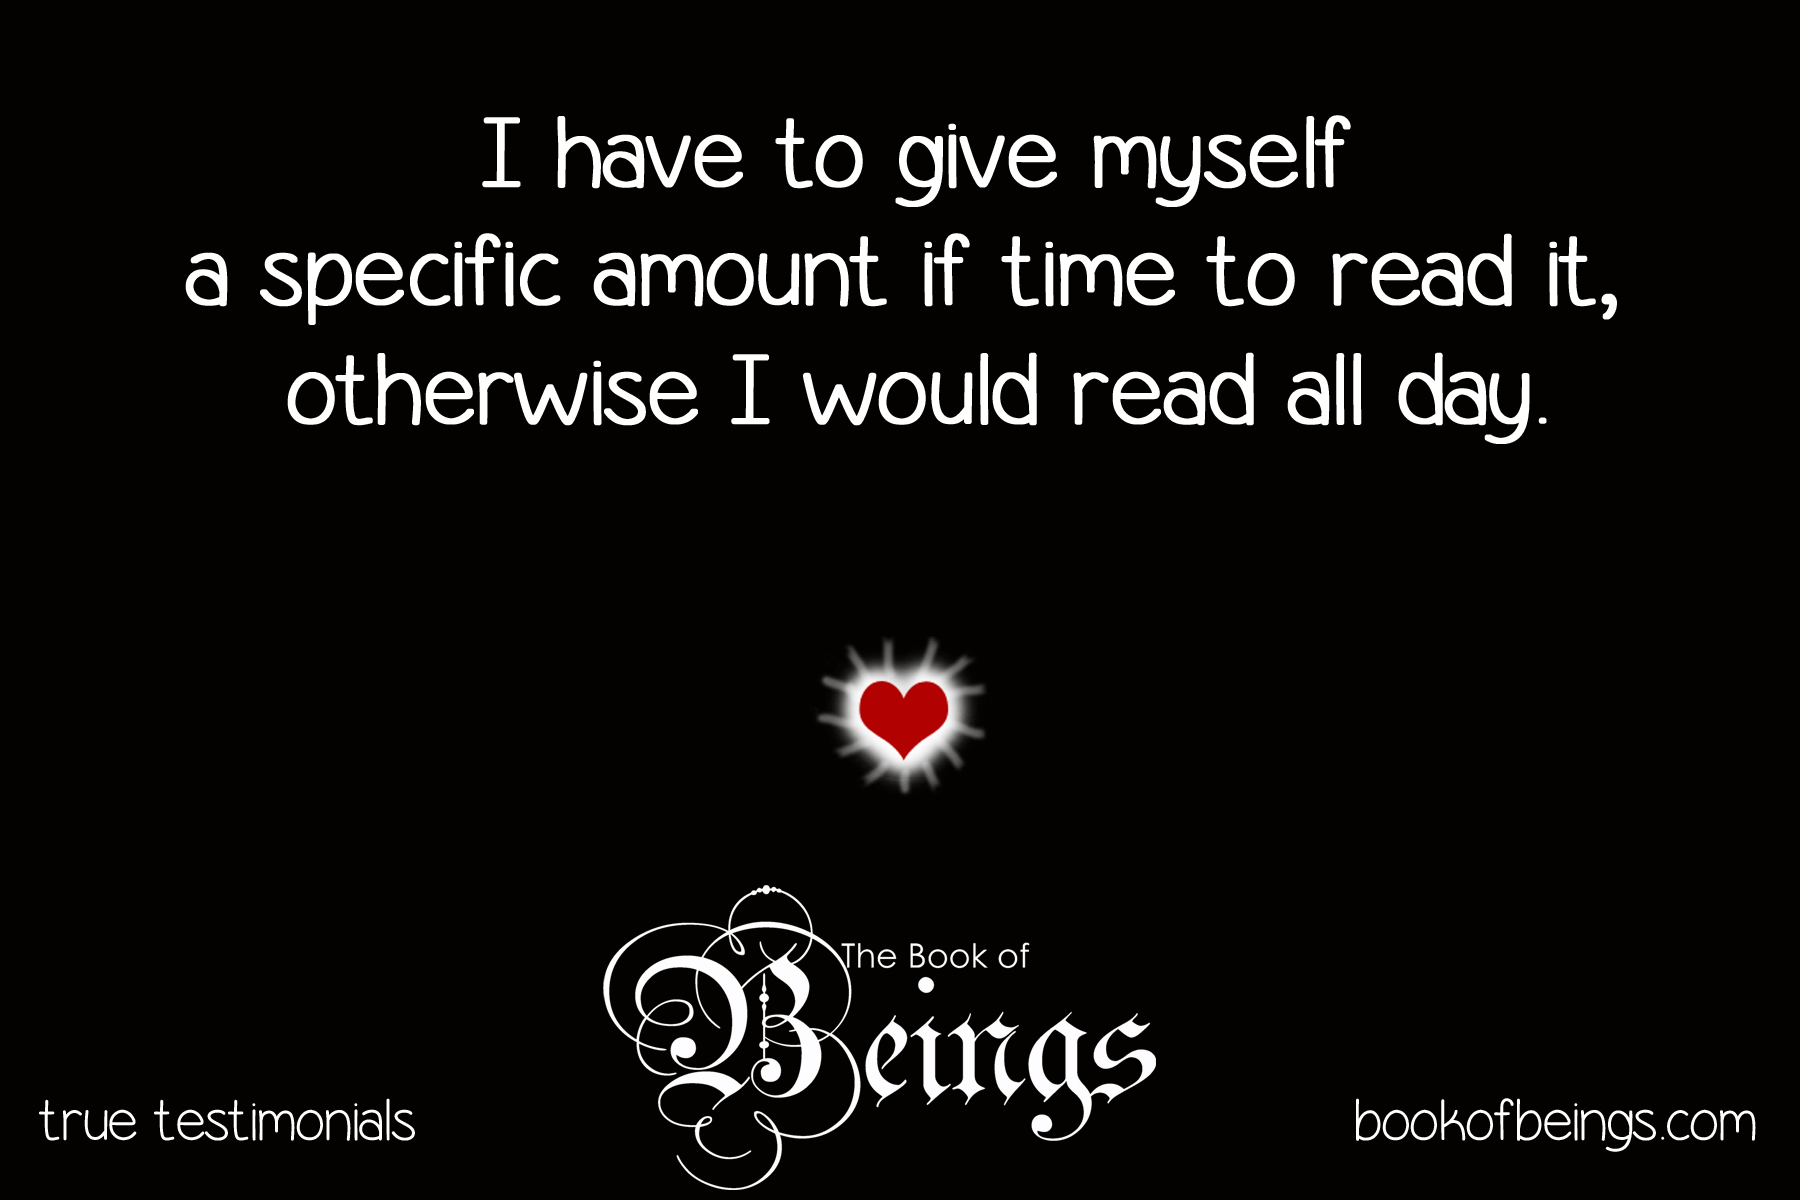 I have to give myself a specific amount of time to read it, otherwise I would read all day.